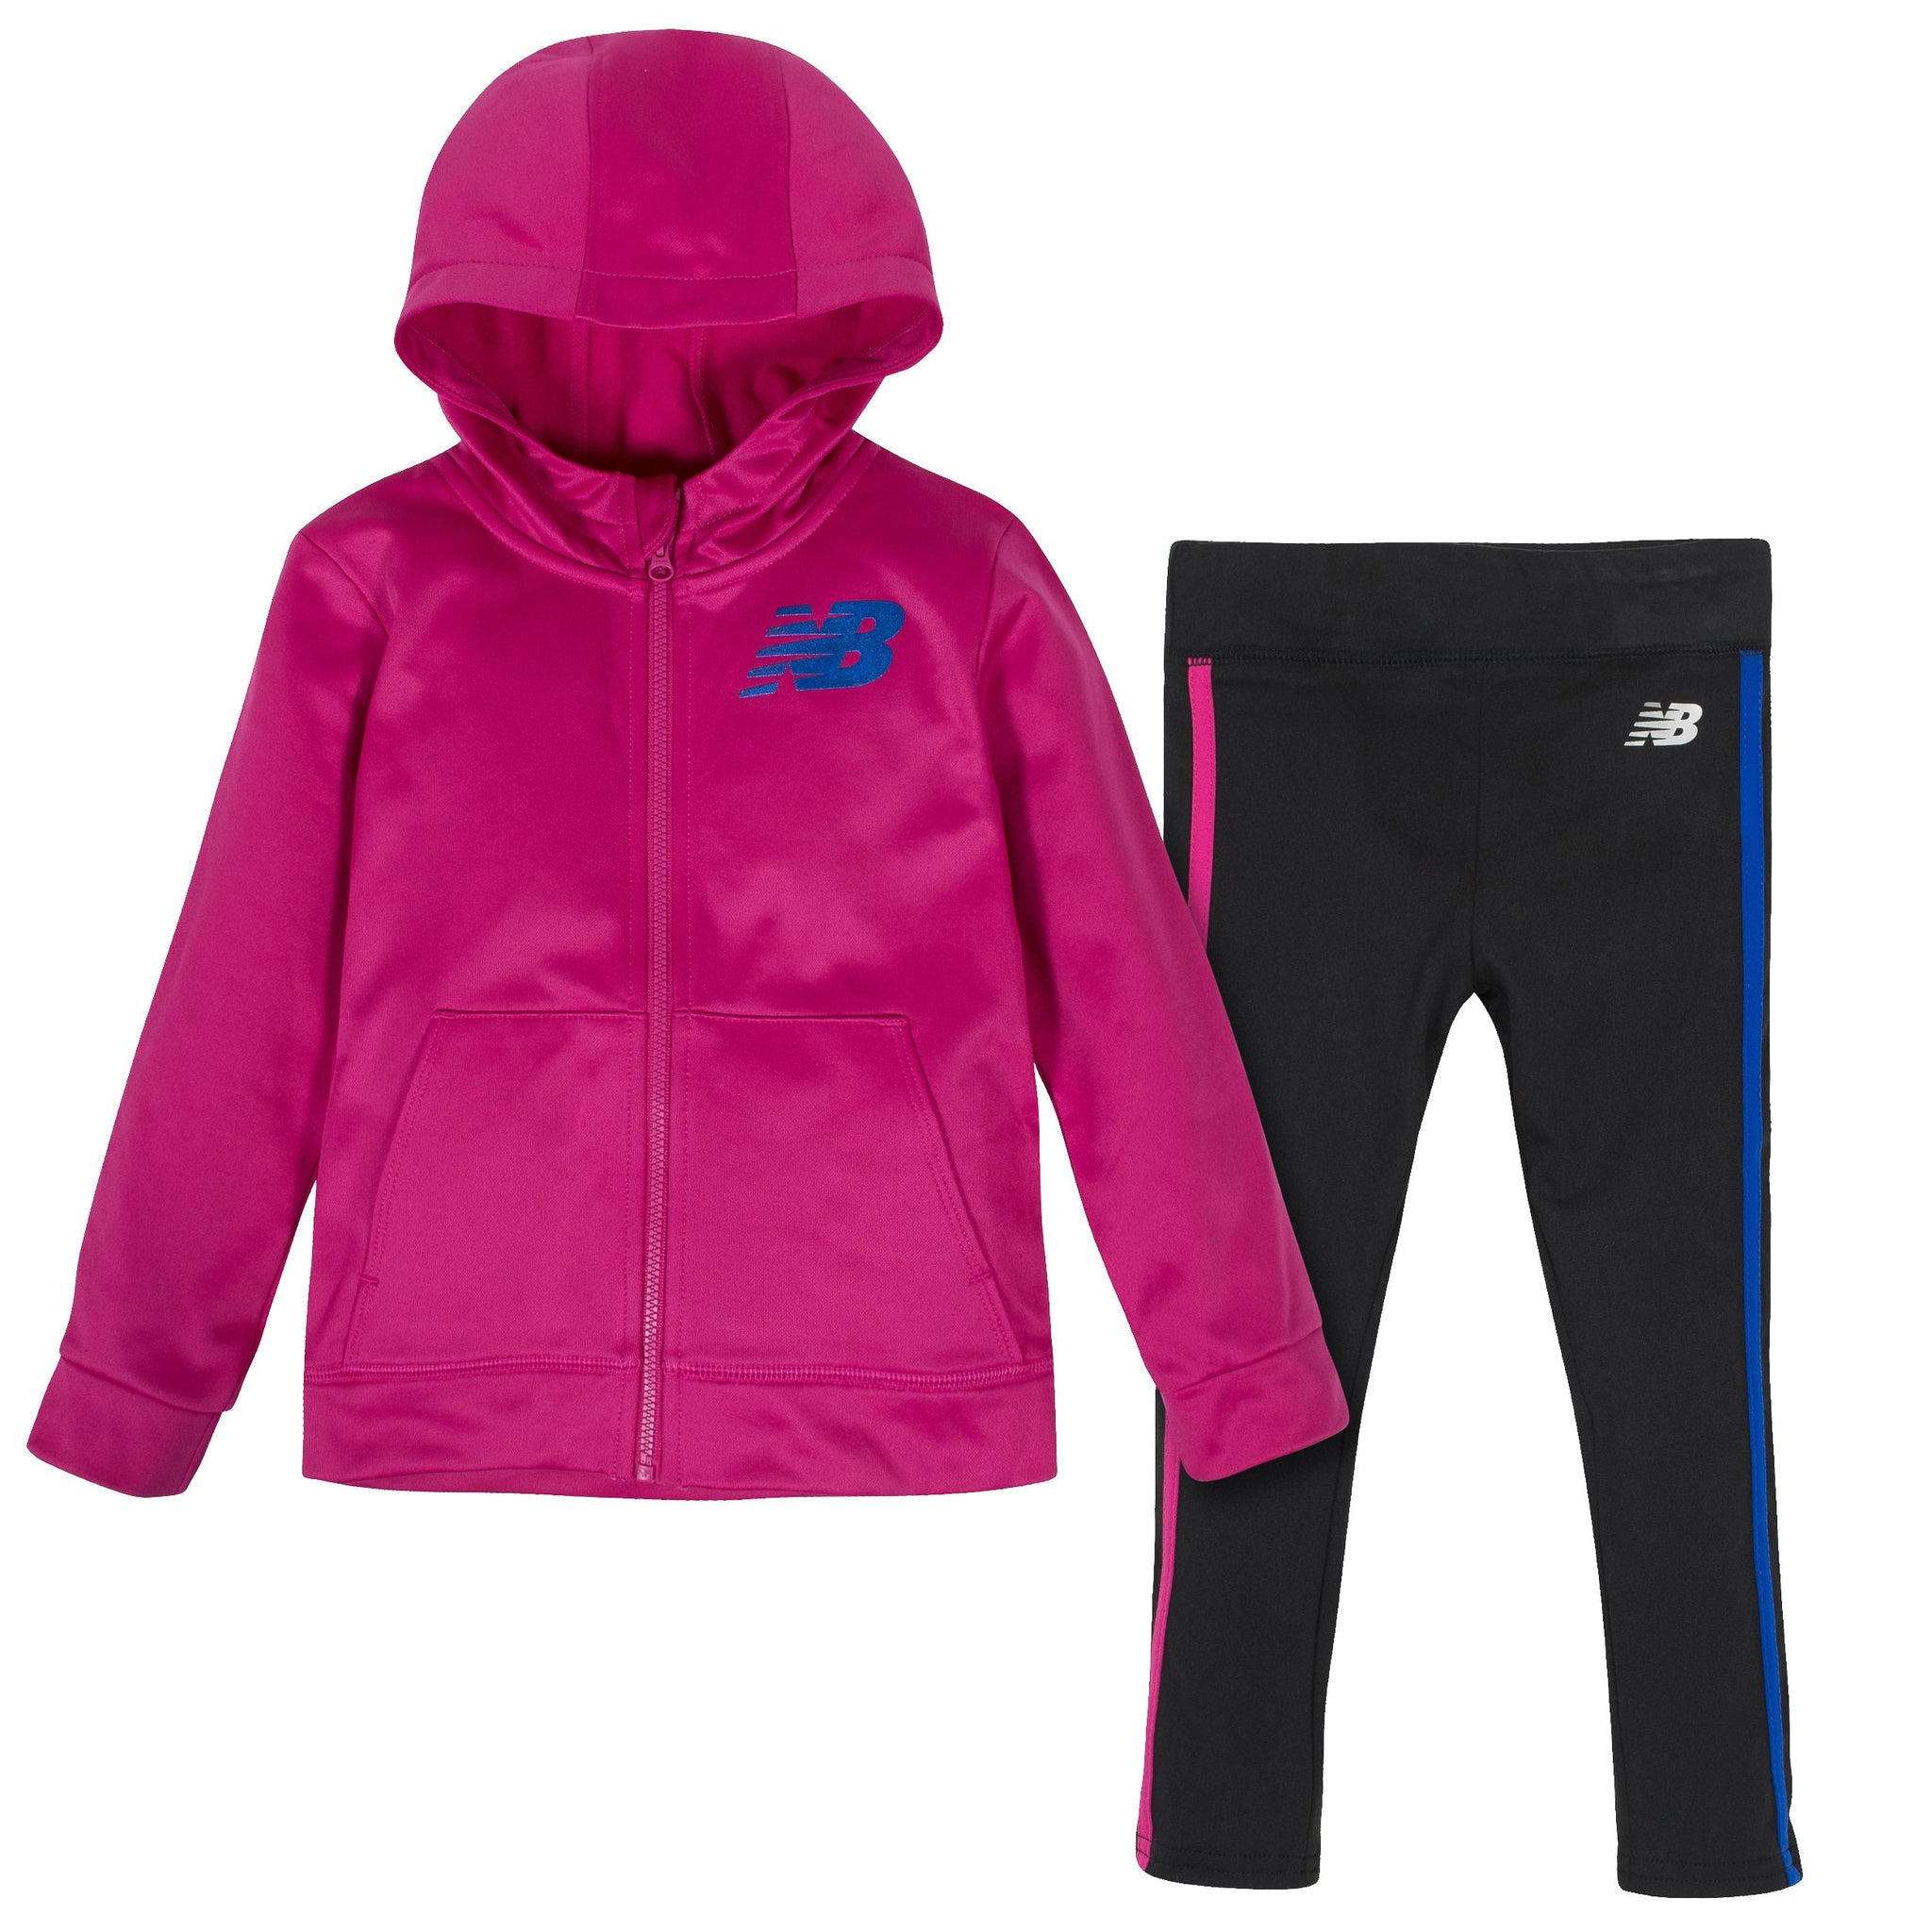 2-Piece Girls' Carnival Pink and Black Fleece Hooded Jacket and Tight Set-Gerber Childrenswear